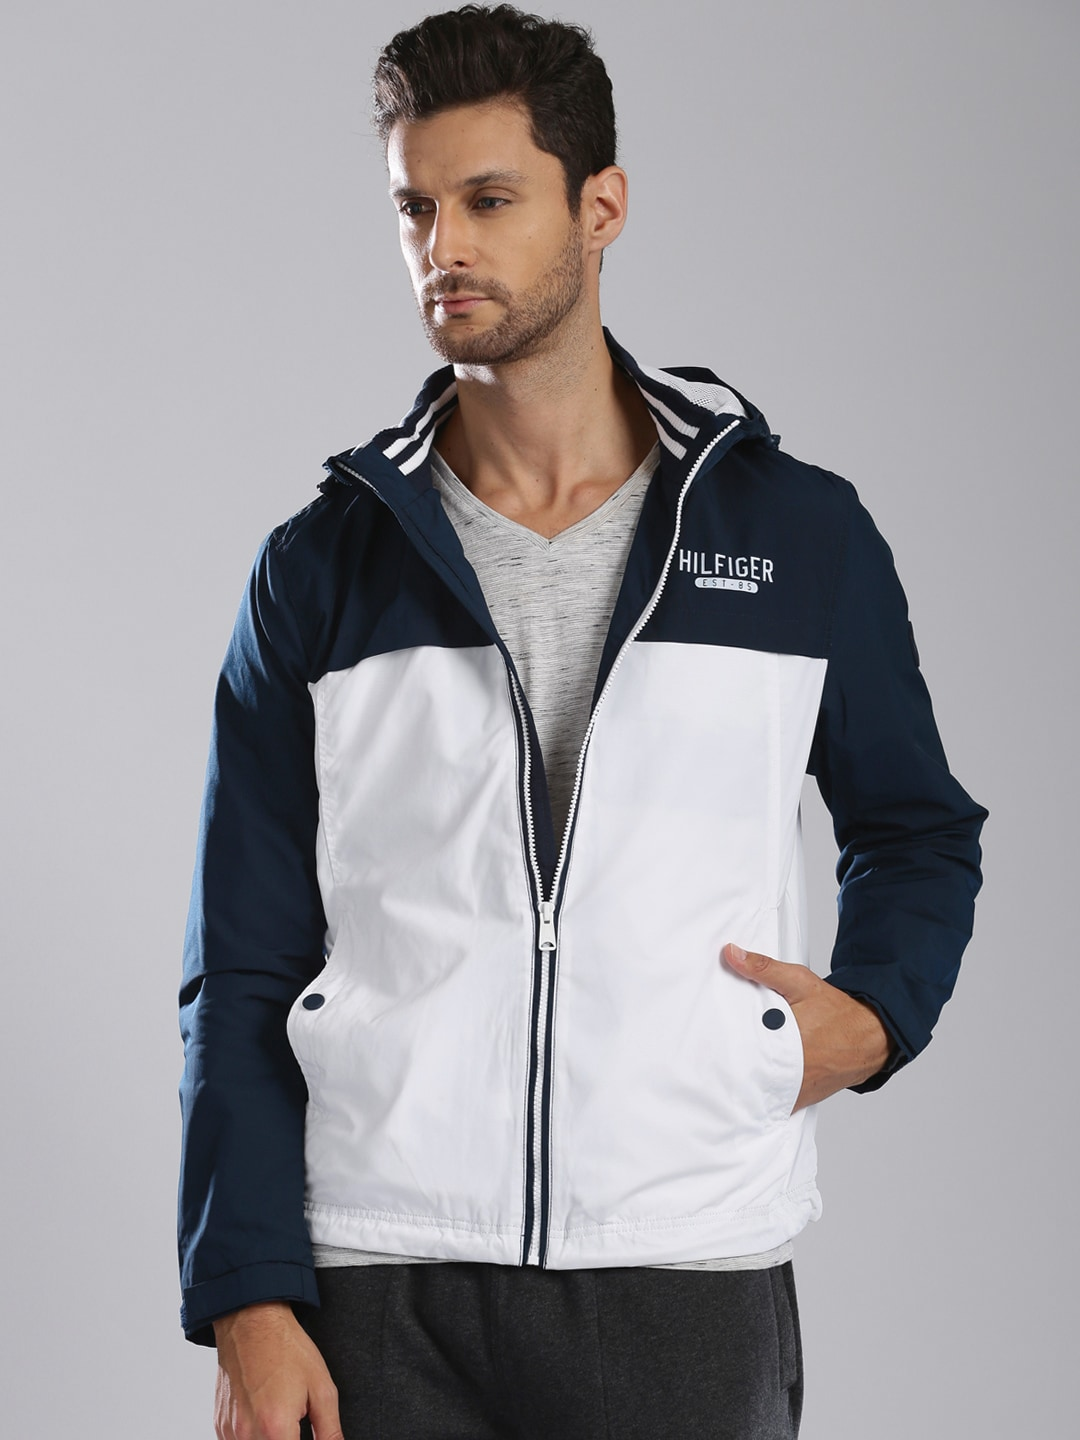 893e7bf58c610 Tommy Hilfiger Jacket - Buy Jackets from Tommy Hilfiger Online